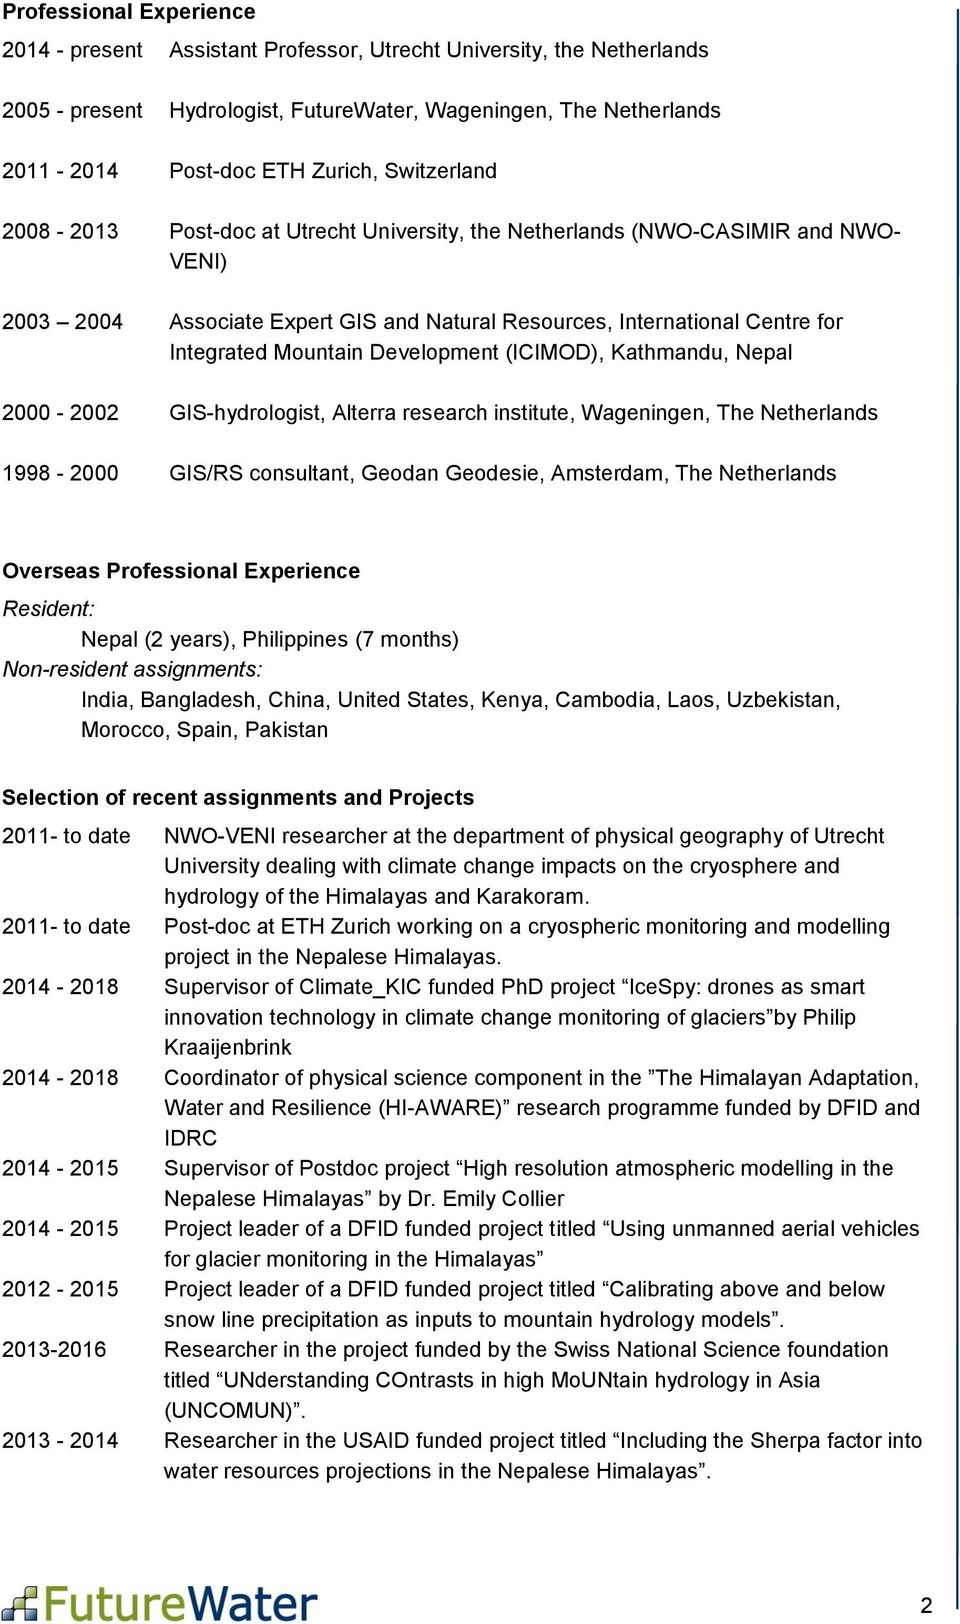 Development (ICIMOD), Kathmandu, Nepal 2000-2002 GIS-hydrologist, Alterra research institute, Wageningen, The Netherlands 1998-2000 GIS/RS consultant, Geodan Geodesie, Amsterdam, The Netherlands